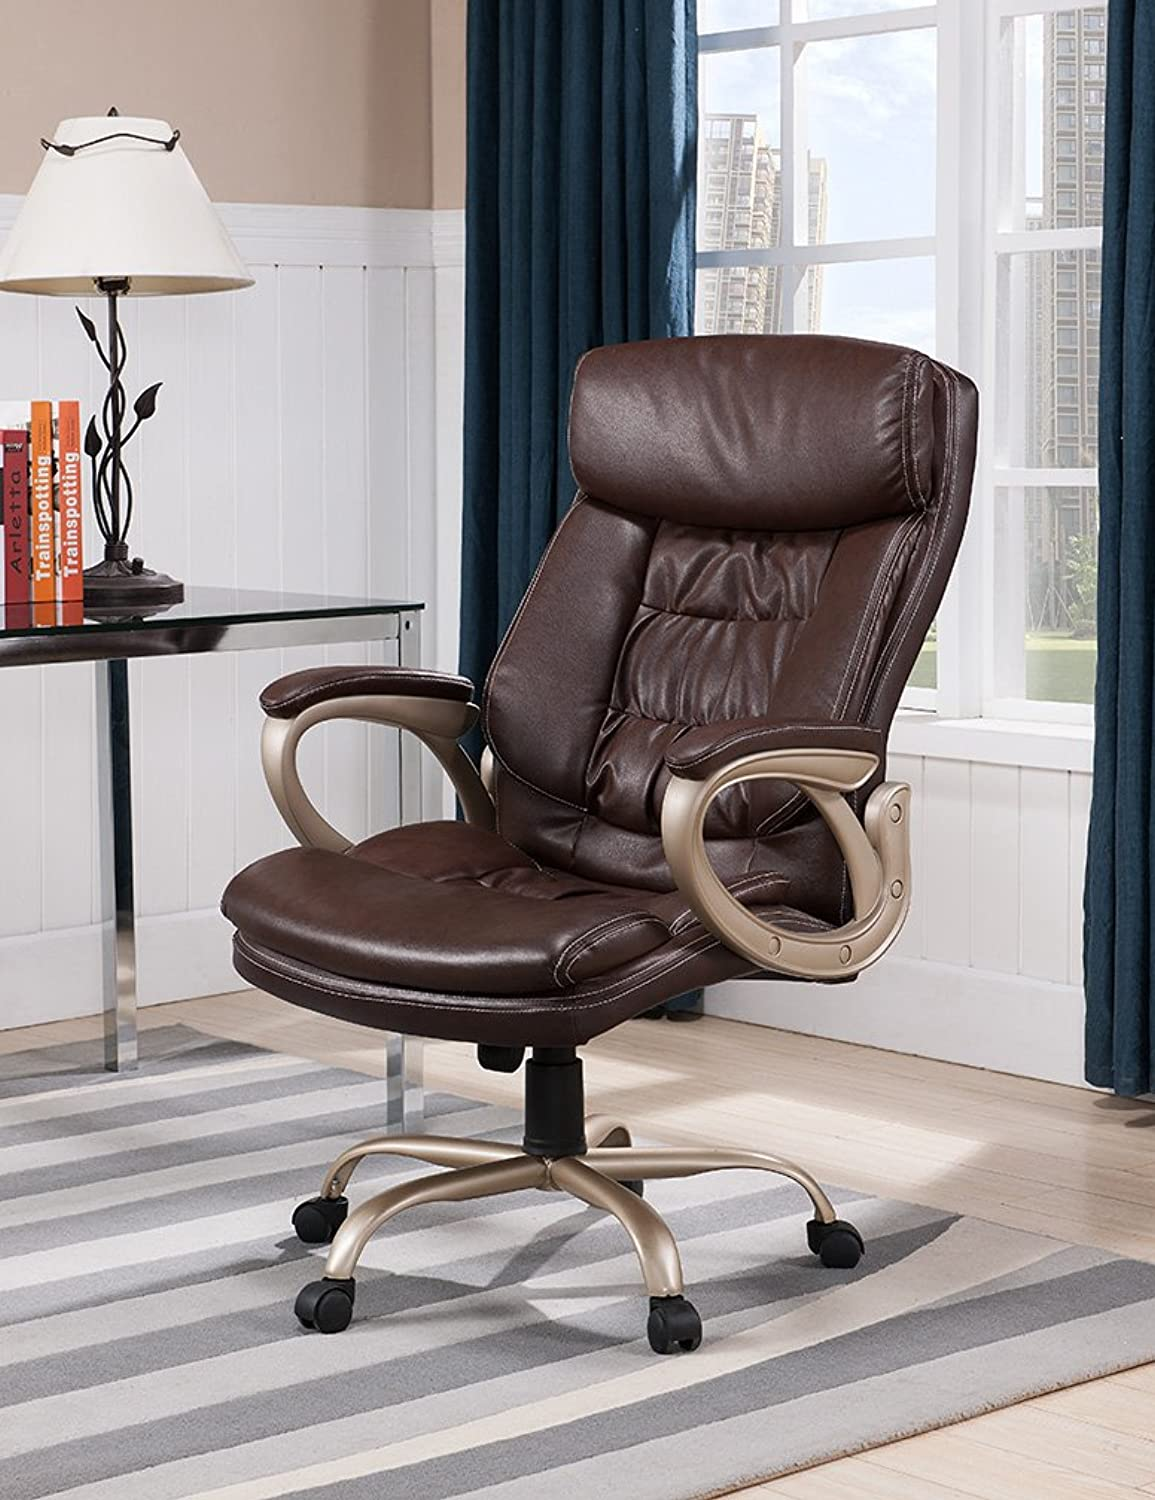 Kings Brand Brown and Champagne PU Leather Executive Office Chair